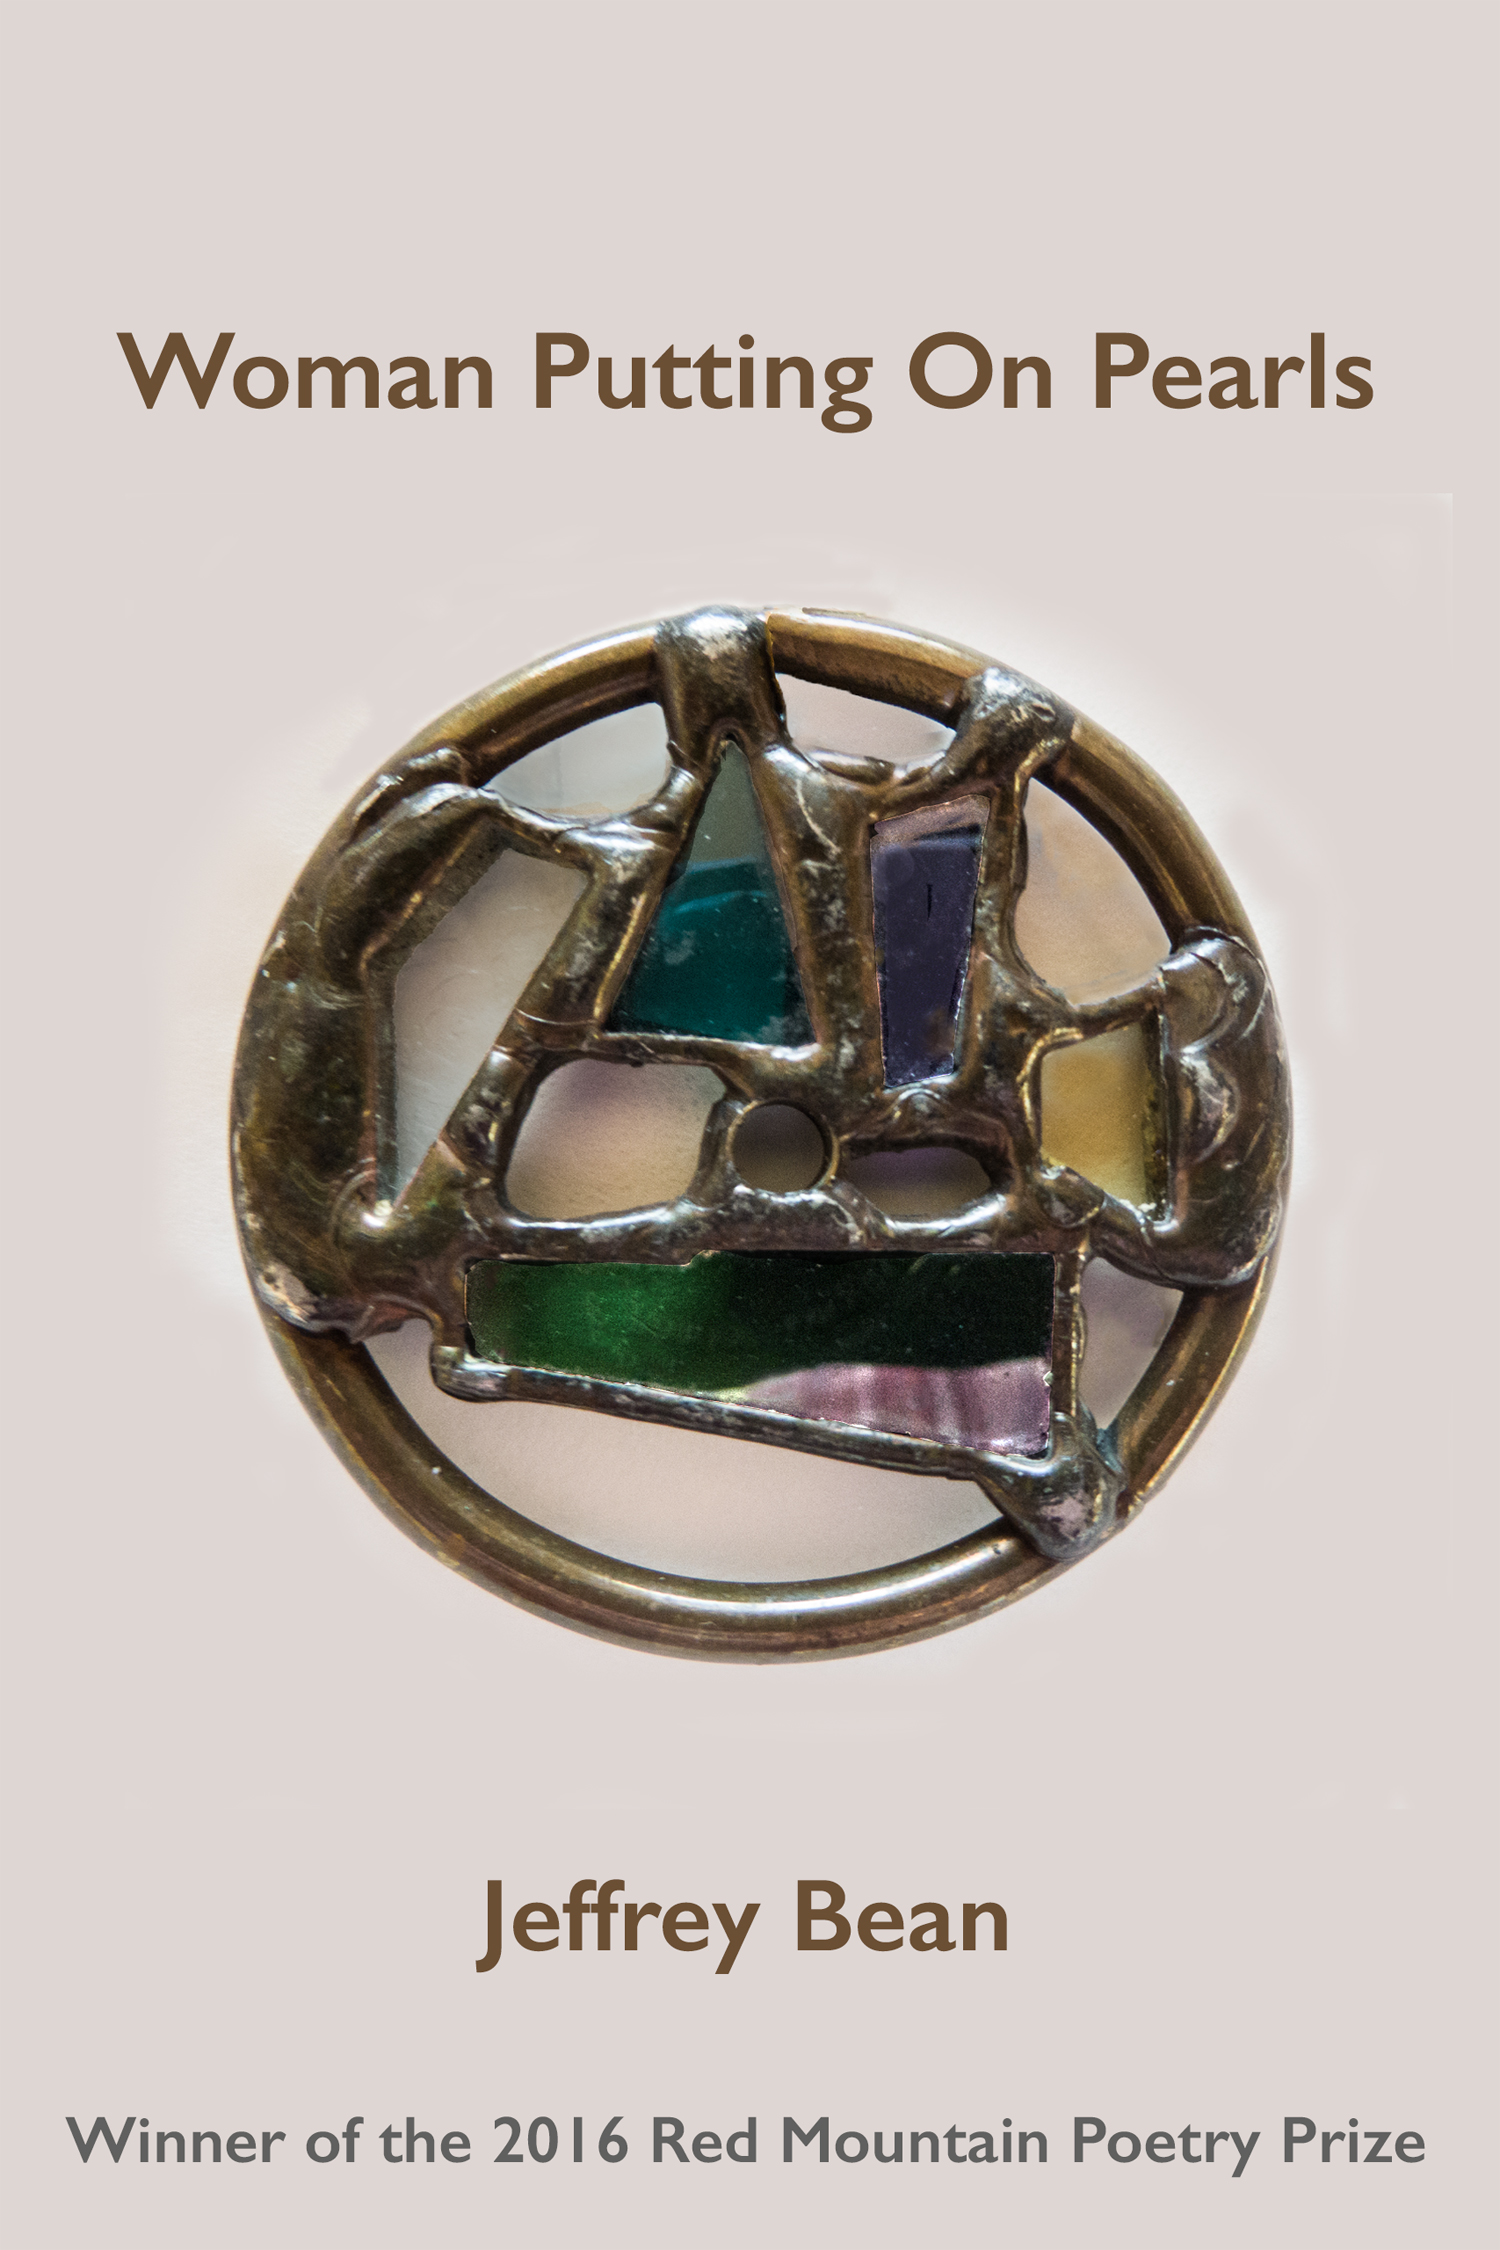 Woman Putting On Pearls